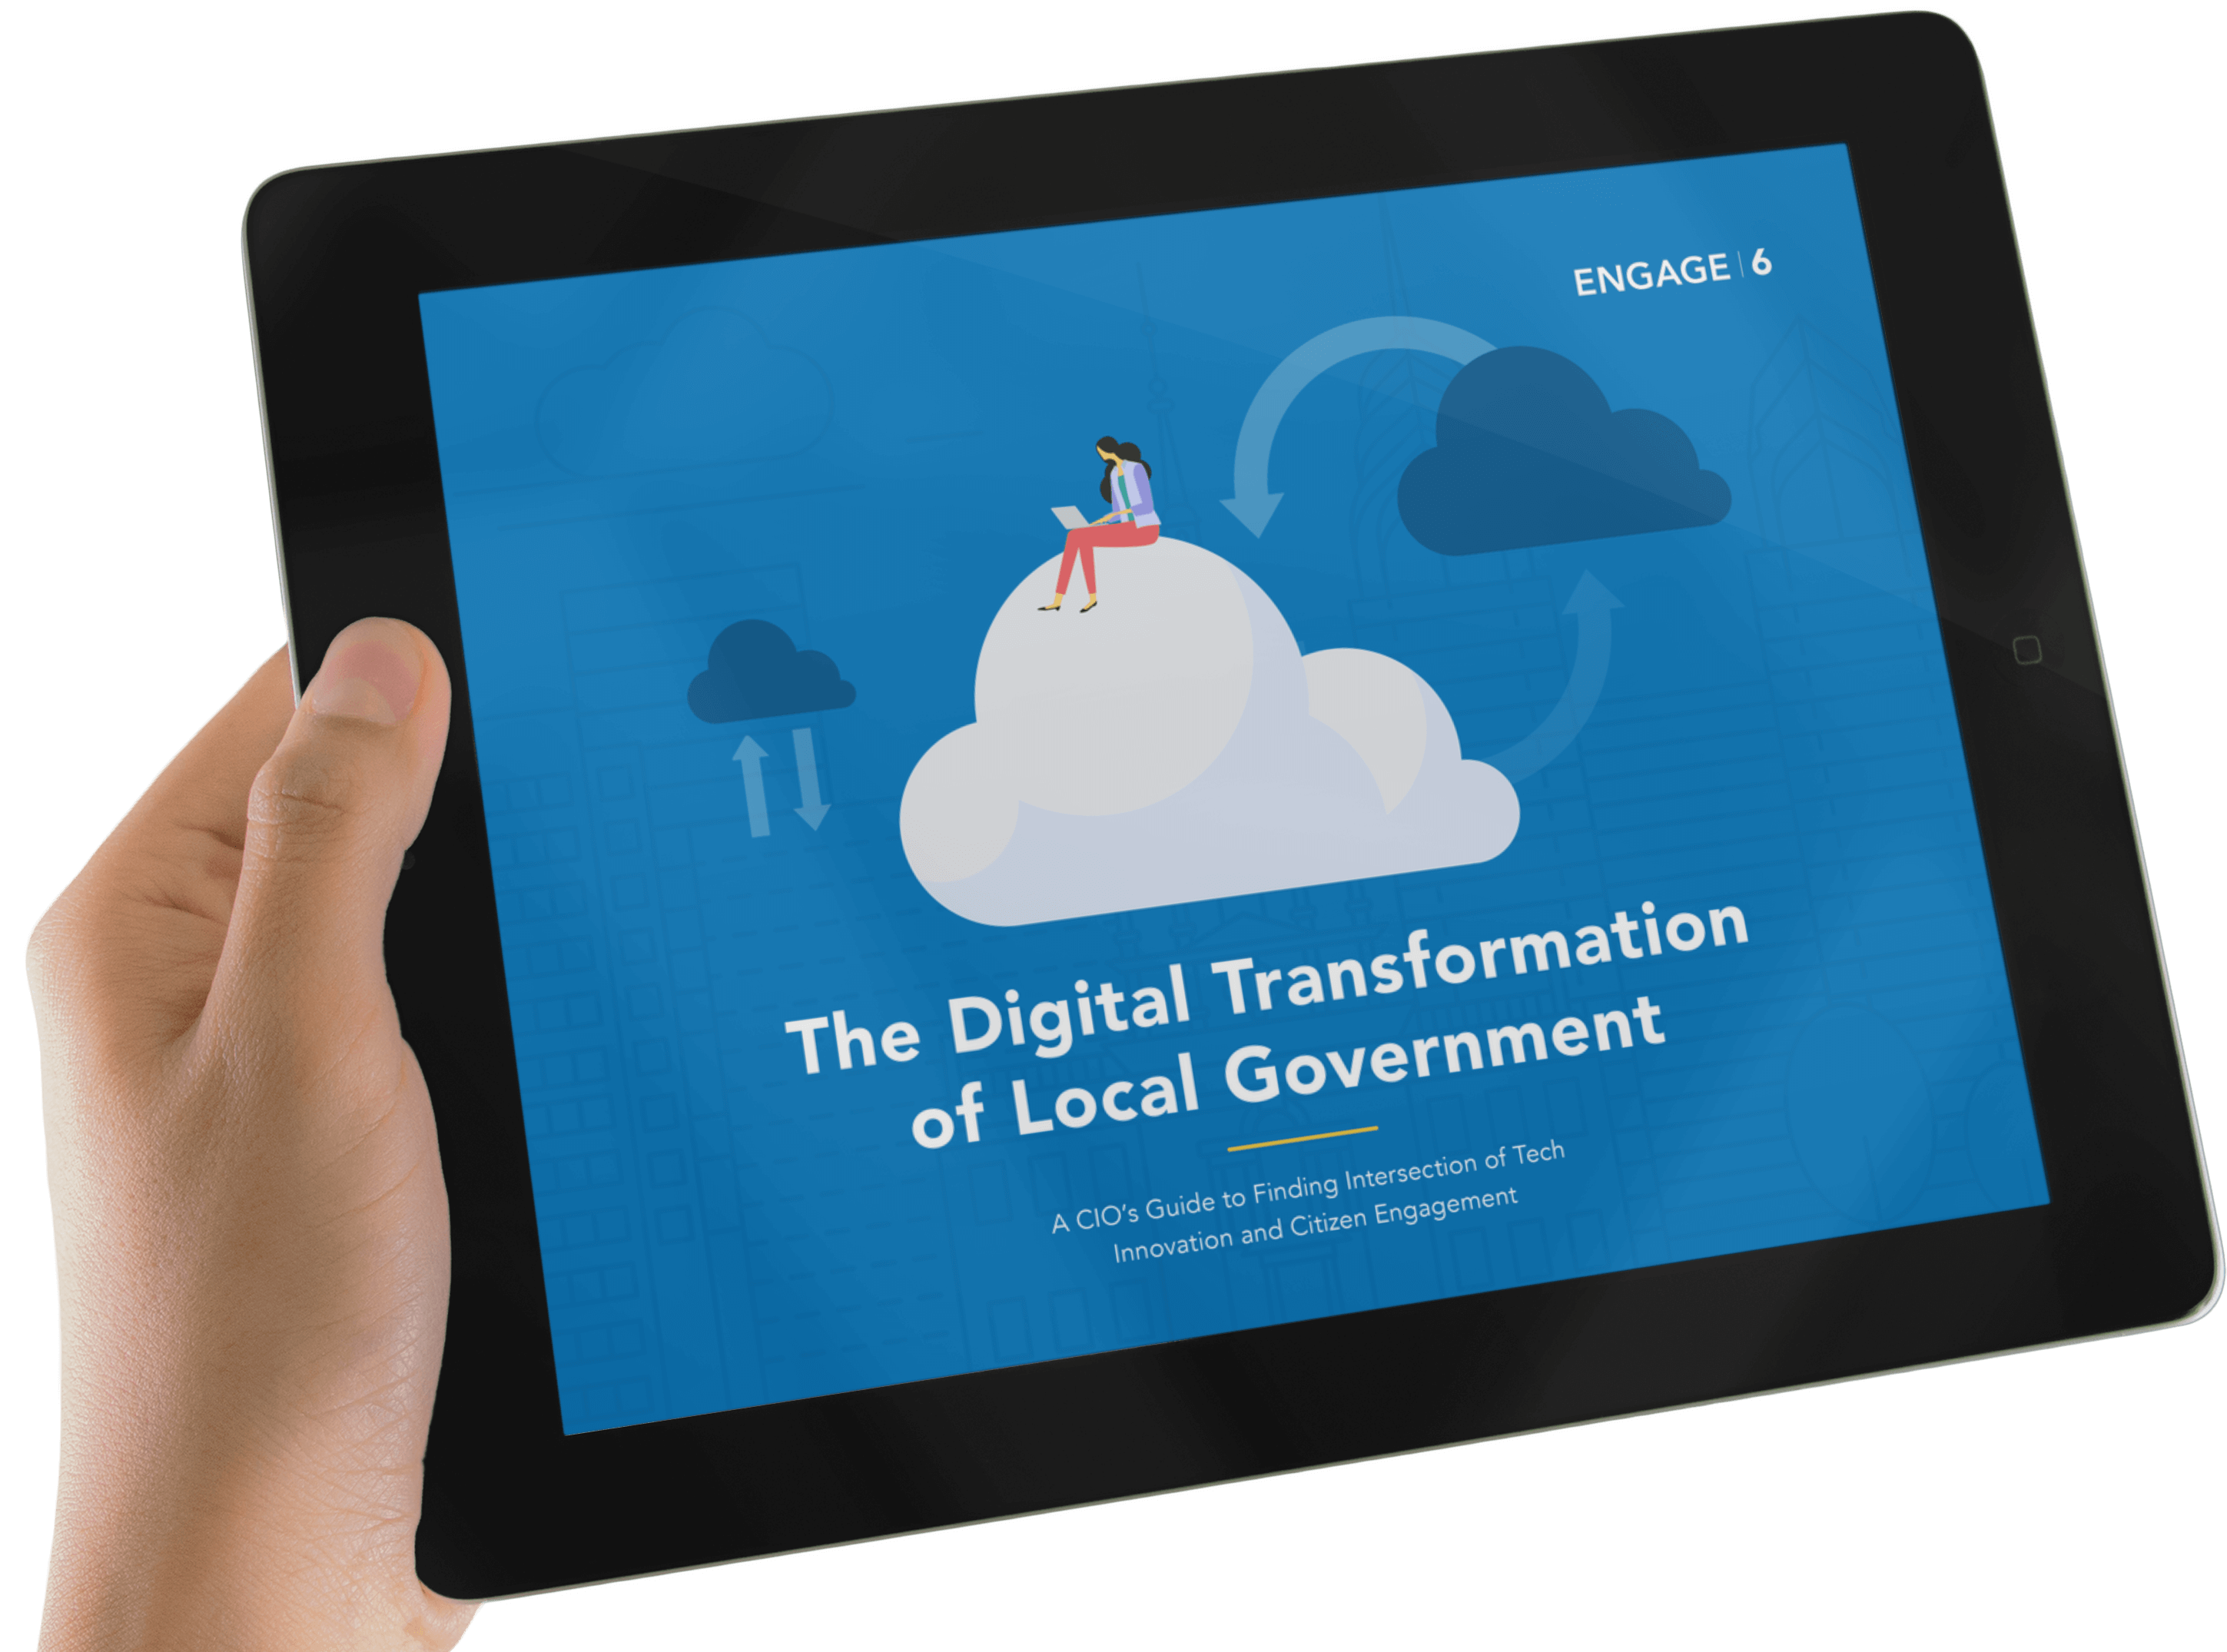 https://cdn2.hubspot.net/hubfs/158743/Blog_Offer_Graphics/eBook_Digital_Transformation_of_Government_FV.png